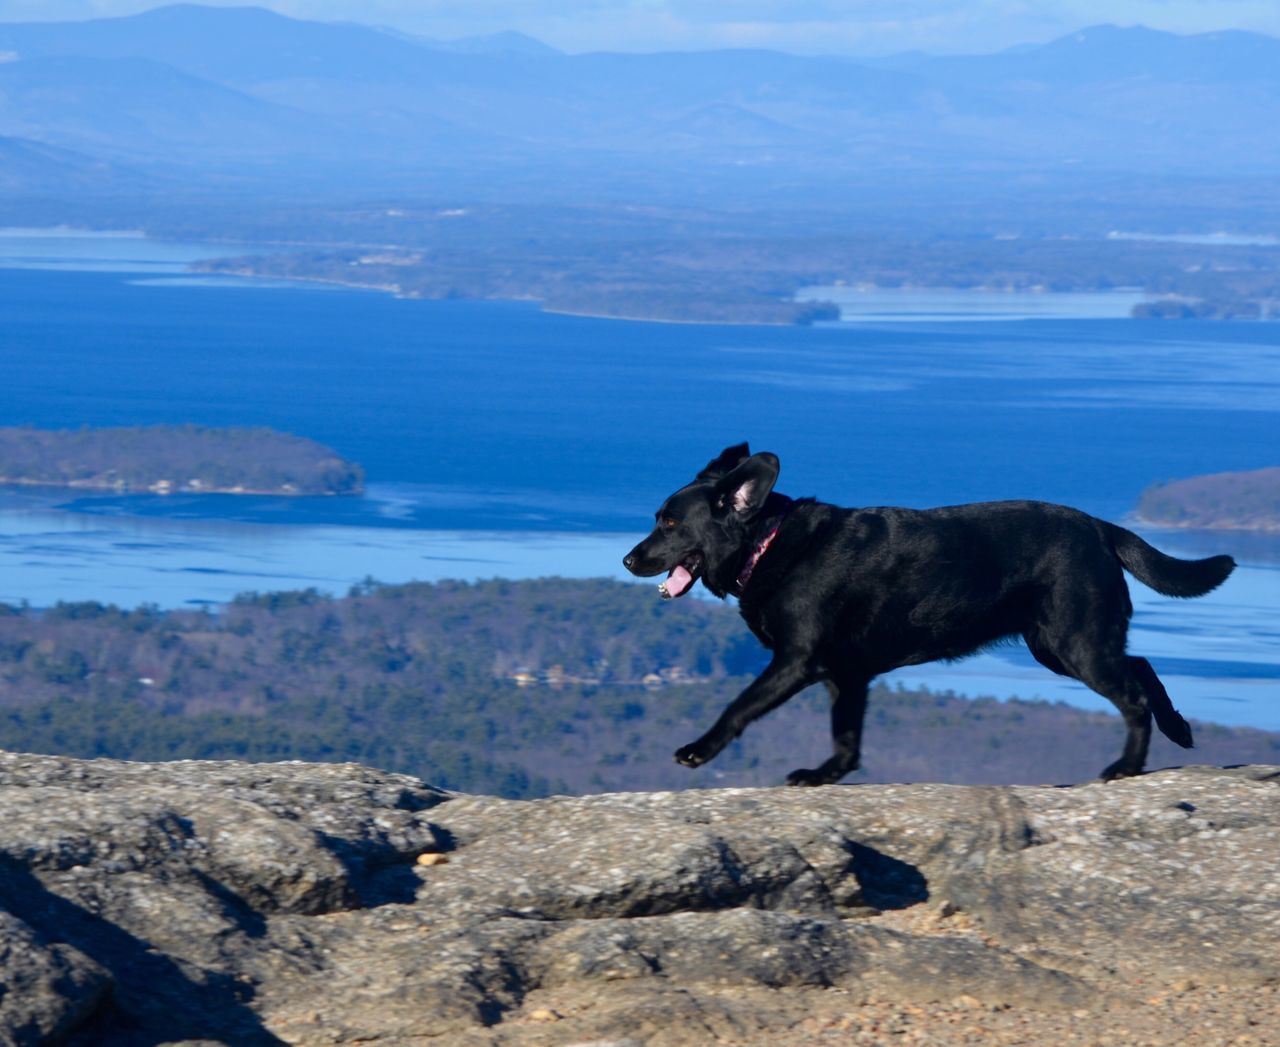 Lake Labrador Retriever lScenics Cold Temperature No People Beauty In Nature Water Black Color Mountains Mountain Range Rocks And Water Running Dog View From Above Hikingadventures